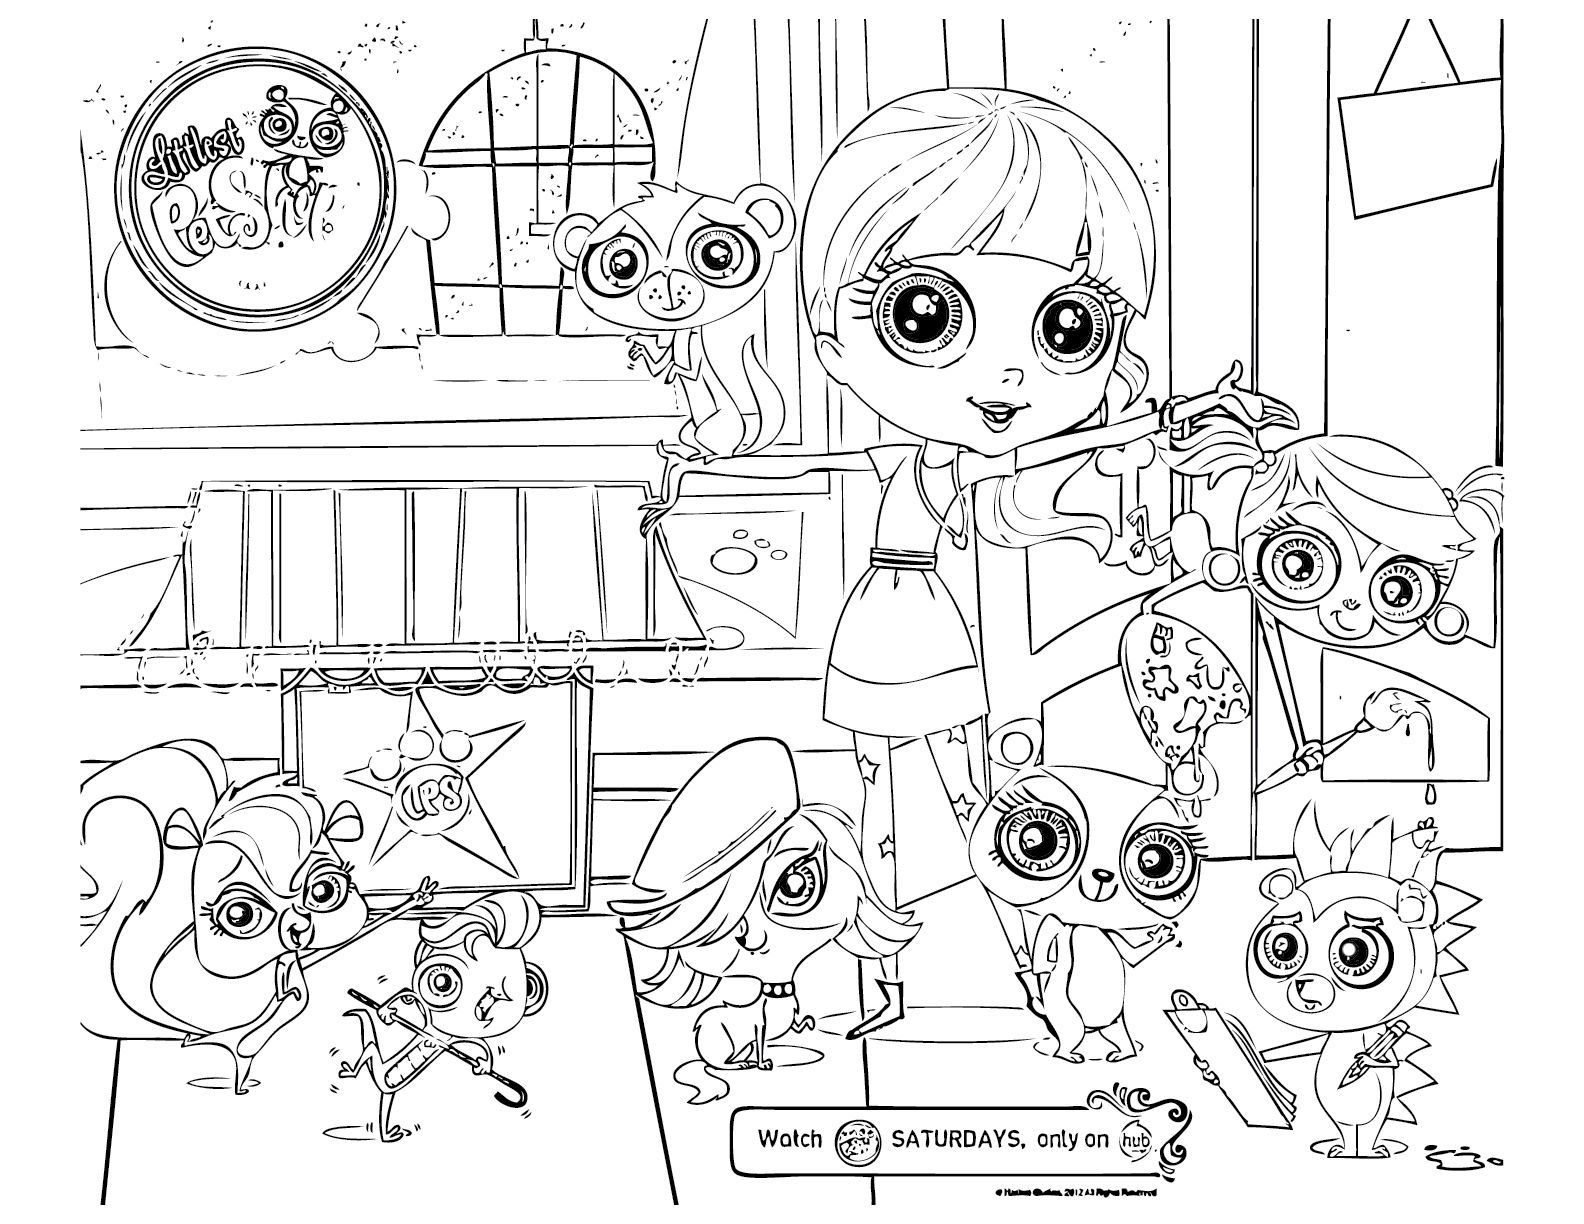 Puppy coloring pages online - Pet Coloring Pages Printable